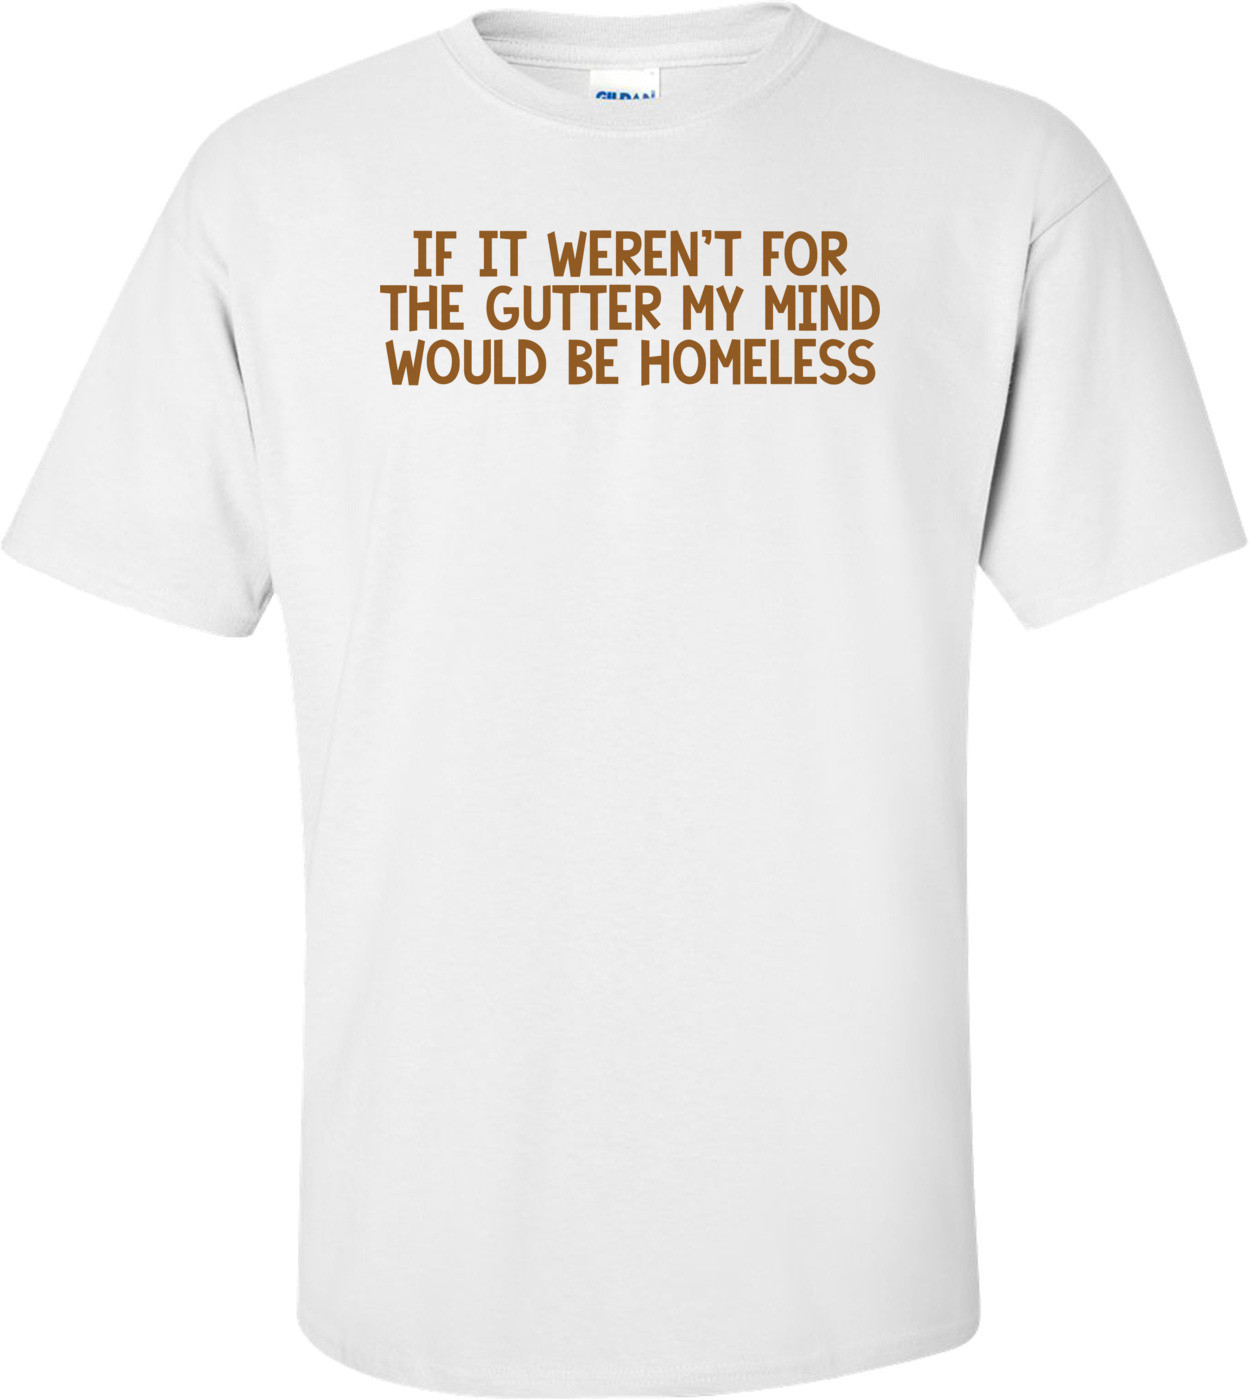 If it weren't for the gutter my mind would be homeless. Shirt